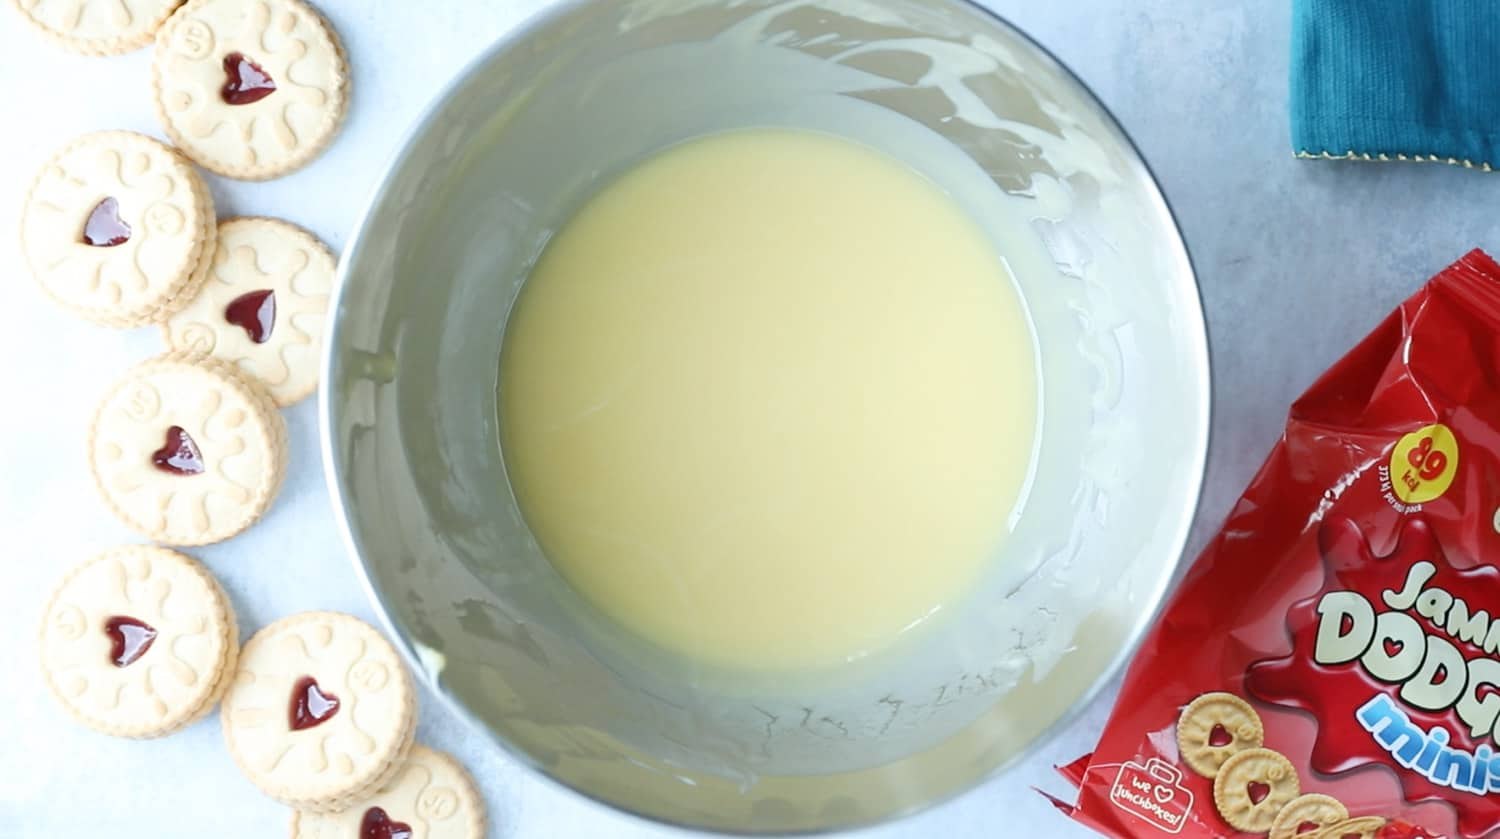 A mixing bowl with melted white chocolate and butter